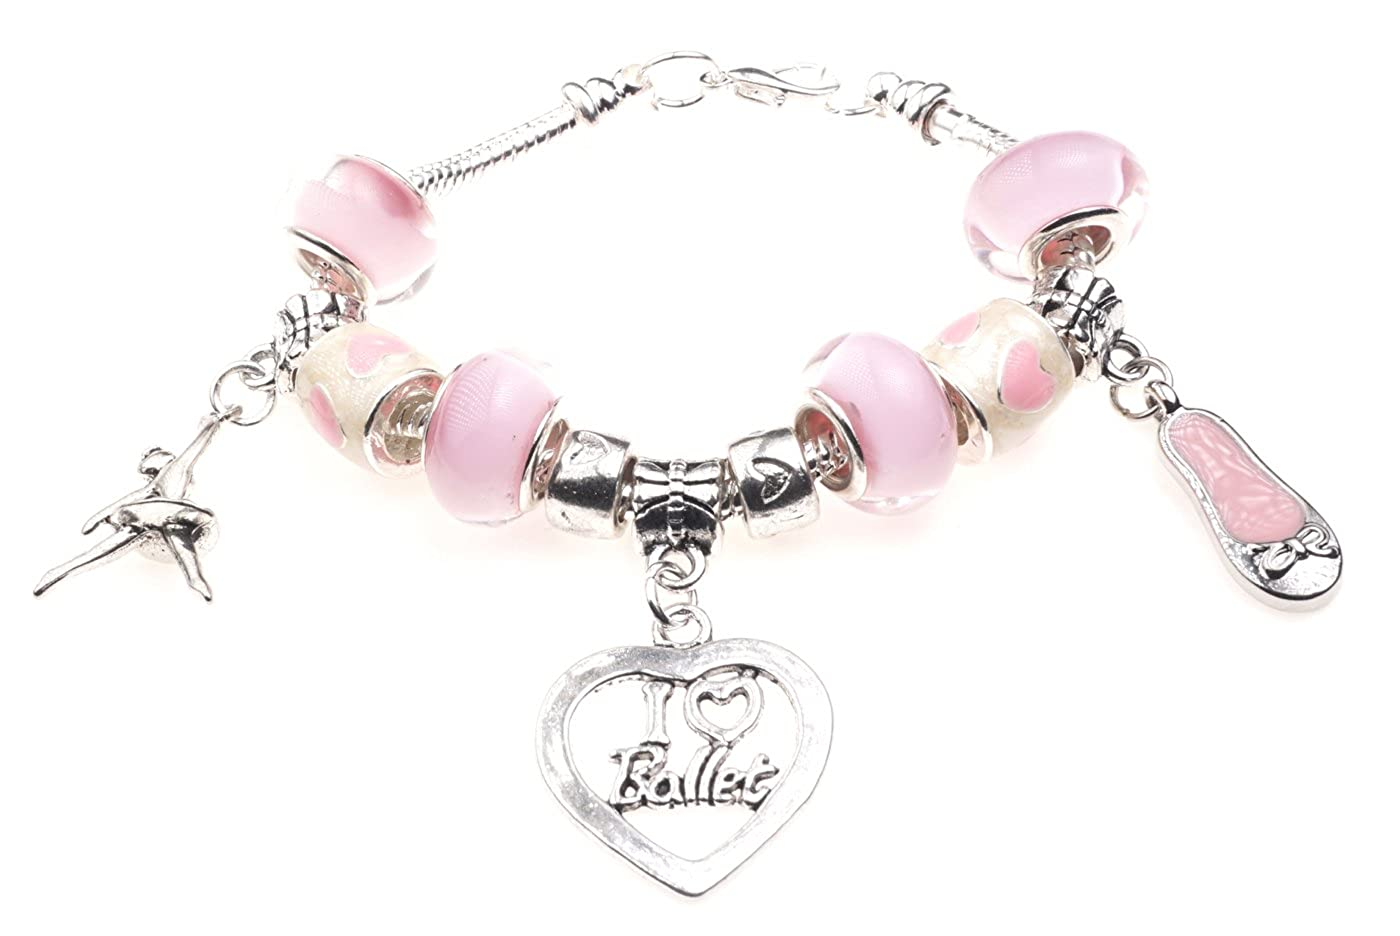 'I Love Ballet' Dancing Themed Childrens Charm Bracelet with Gift Box Girls Jewellery Jewellery Hut BRkidsILBallet